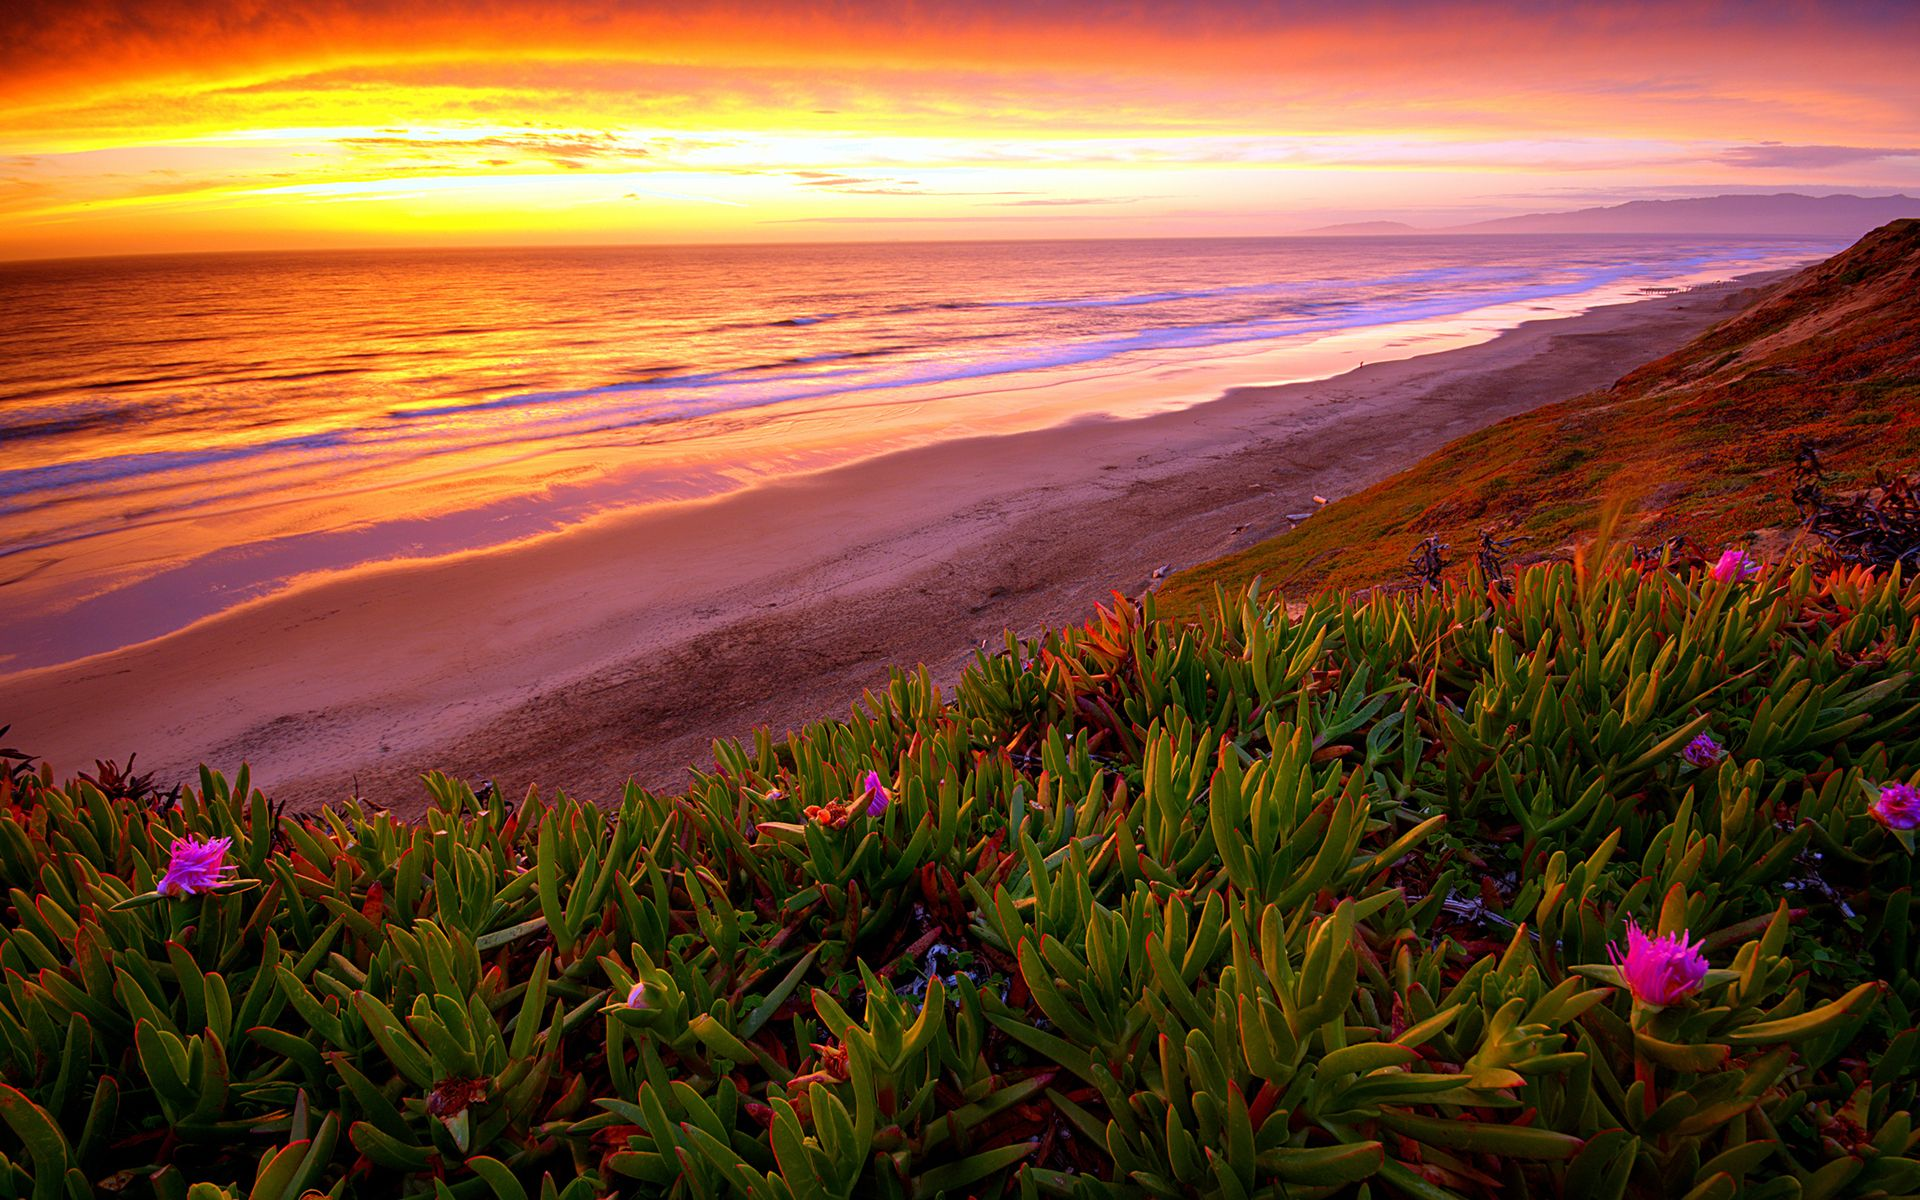 Flower Landscapes Ocean And Flowers Paintings Beach Ocean Sunset Plant Flowers